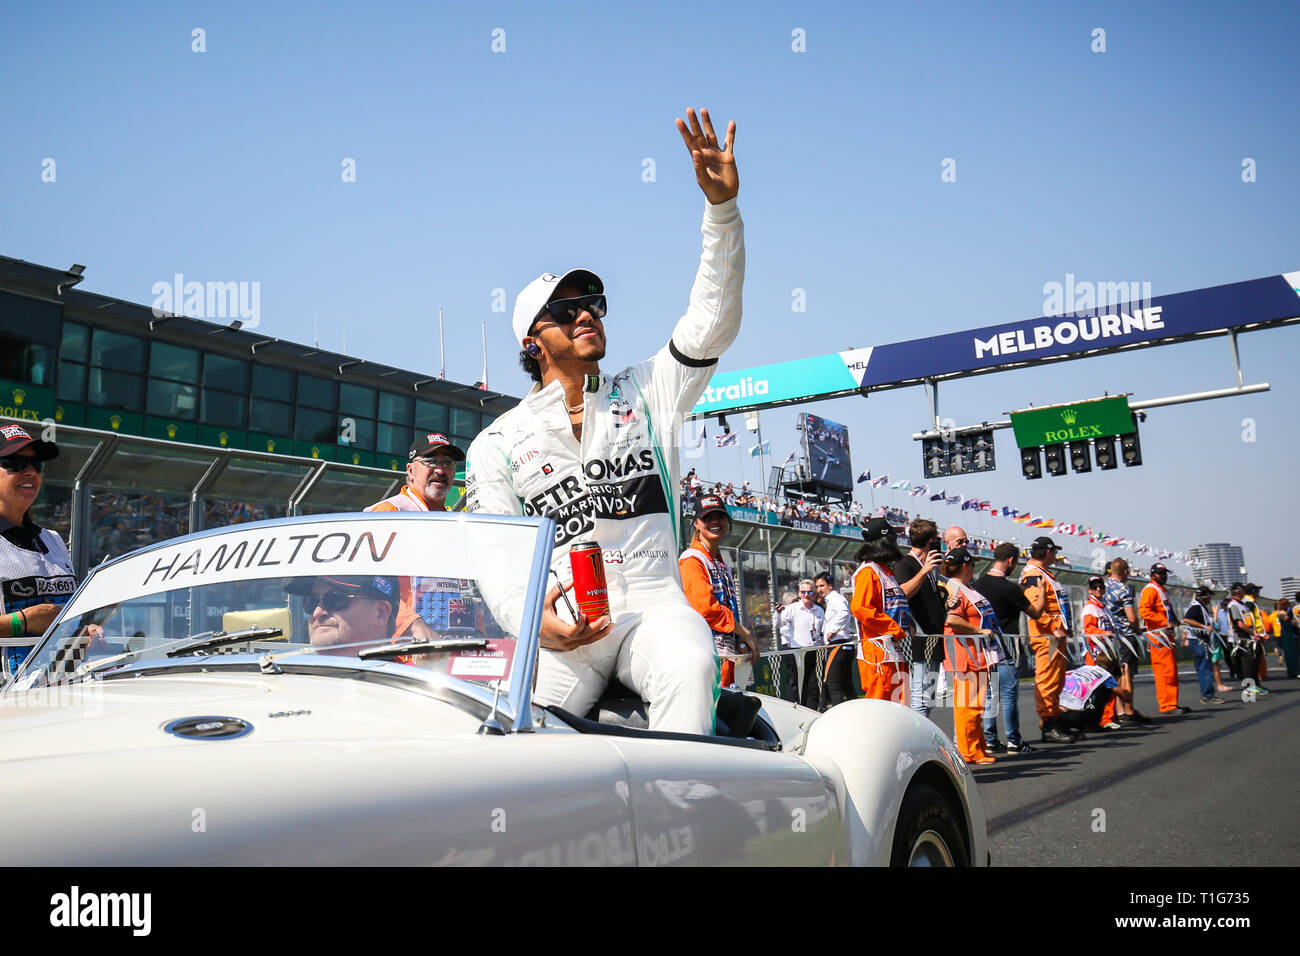 MELBOURNE, AUSTRALIA - MARCH 17: Lewis HAMILTON of Mercedes-AMG Petronas Motorsport on the drivers parade before the start of the 2019 Formula 1 Austr Stock Photo